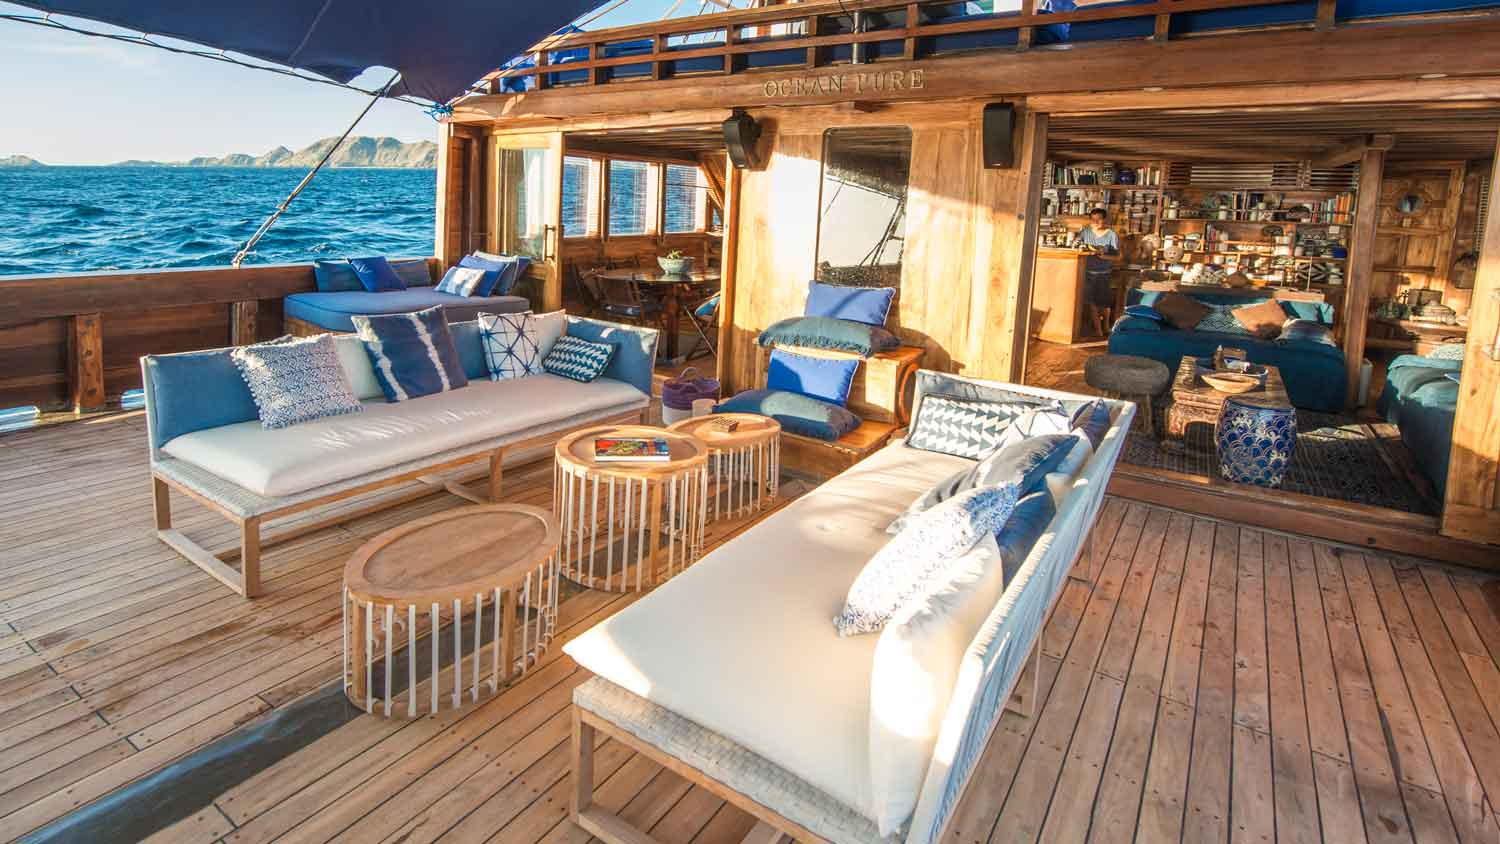 Ocean Pure deck living aboard